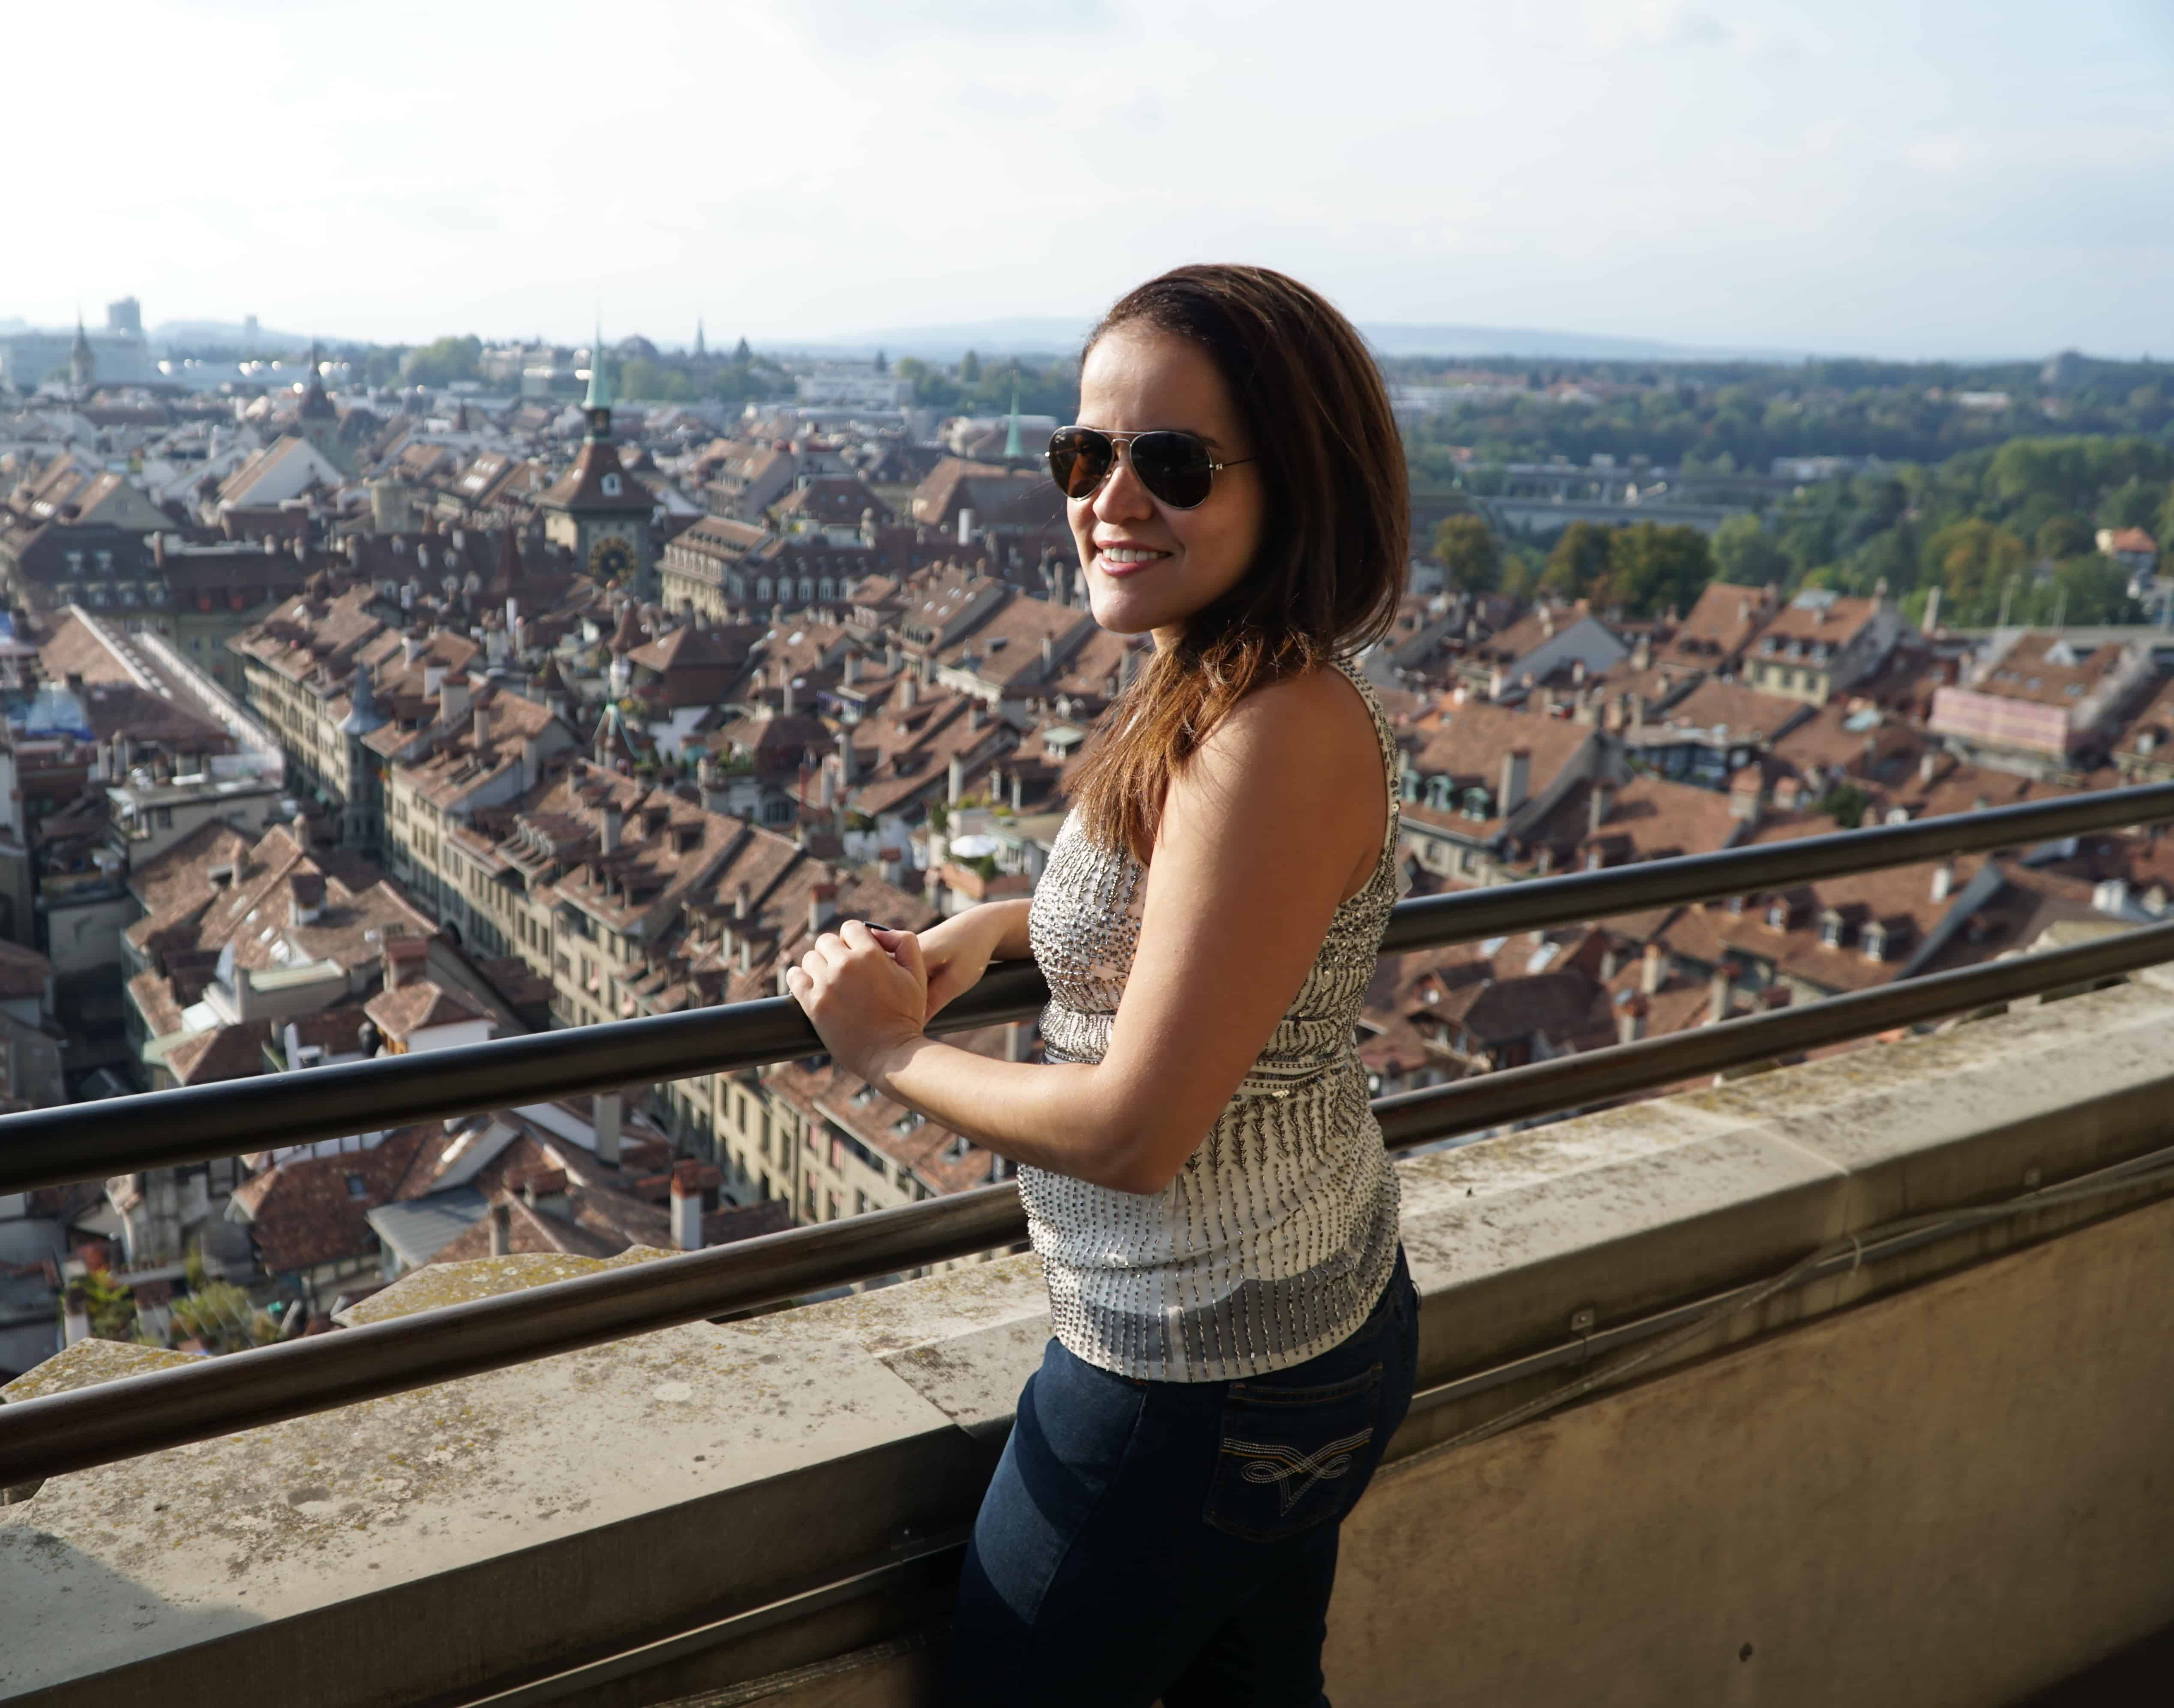 Me at the top of the Munster Cathedral in Bern Switzerland